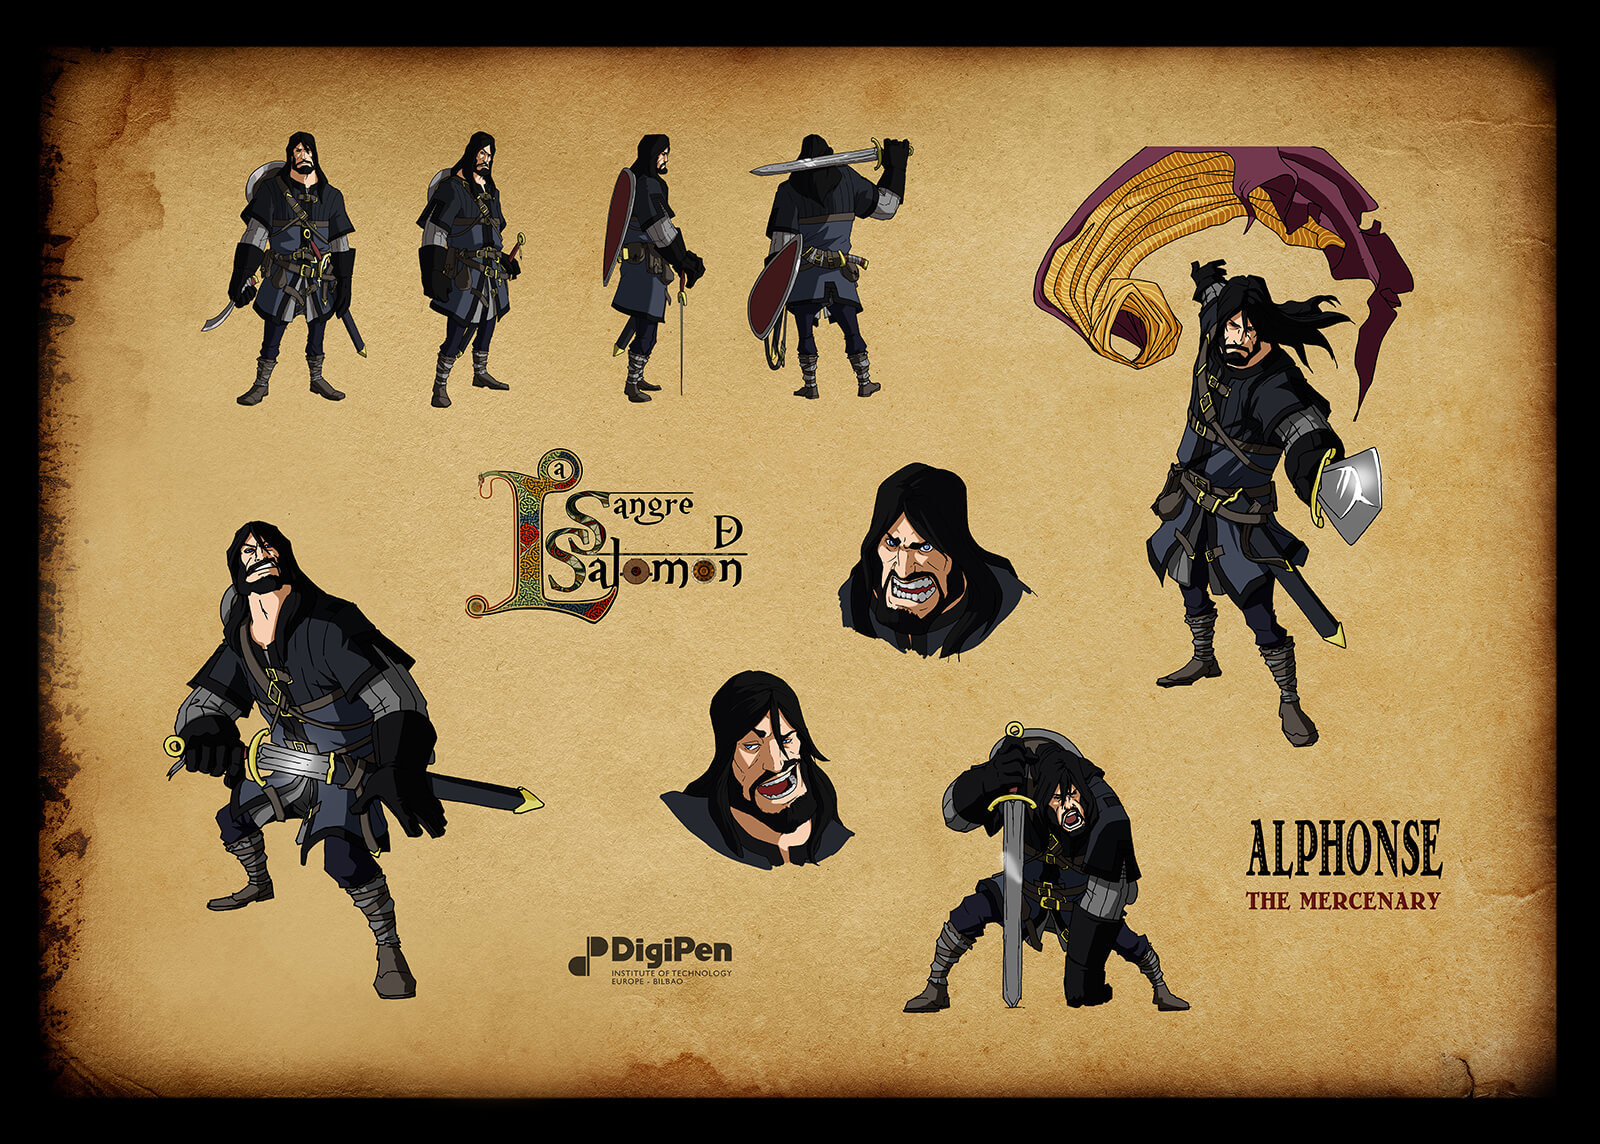 Concept paintings for Alphonse the Mercenary in Sangre de Salomon in various battle poses and expressions